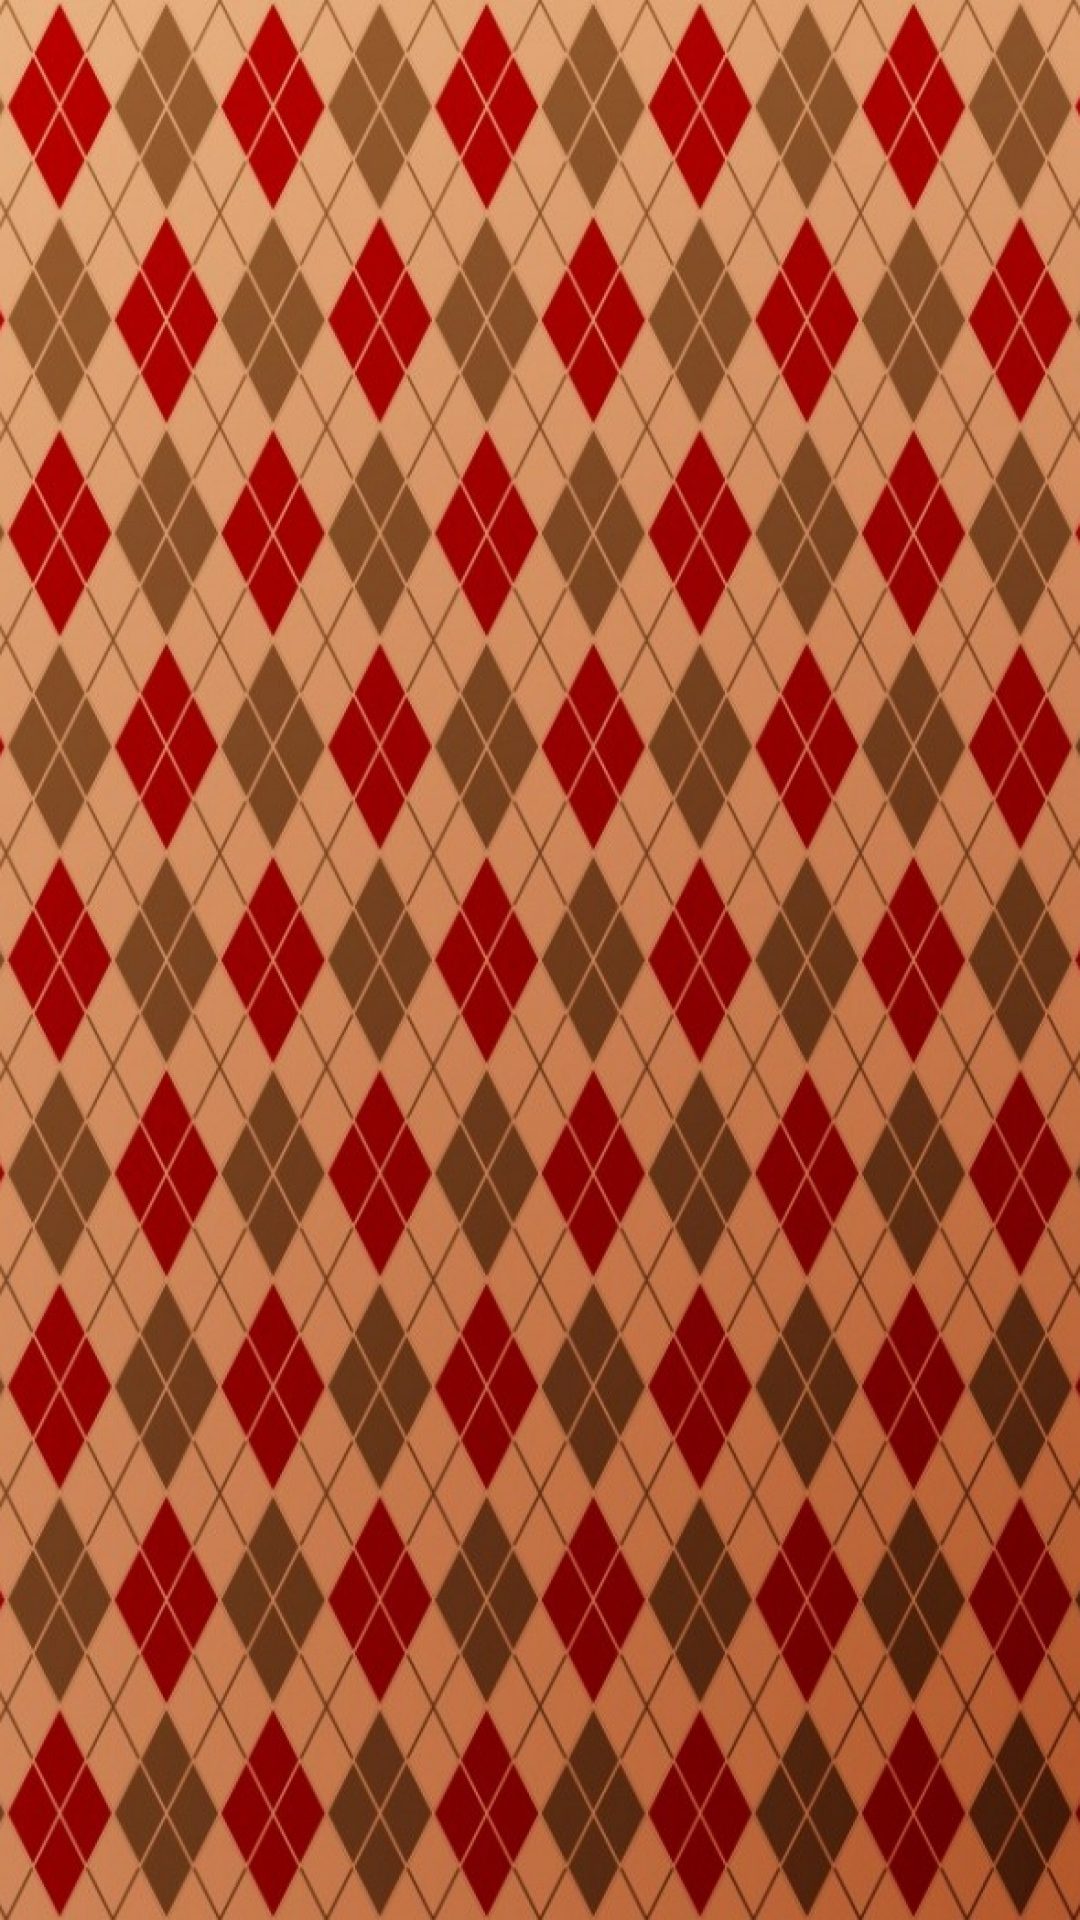 Vintage Iphone Wallpapers Pixelstalk Net